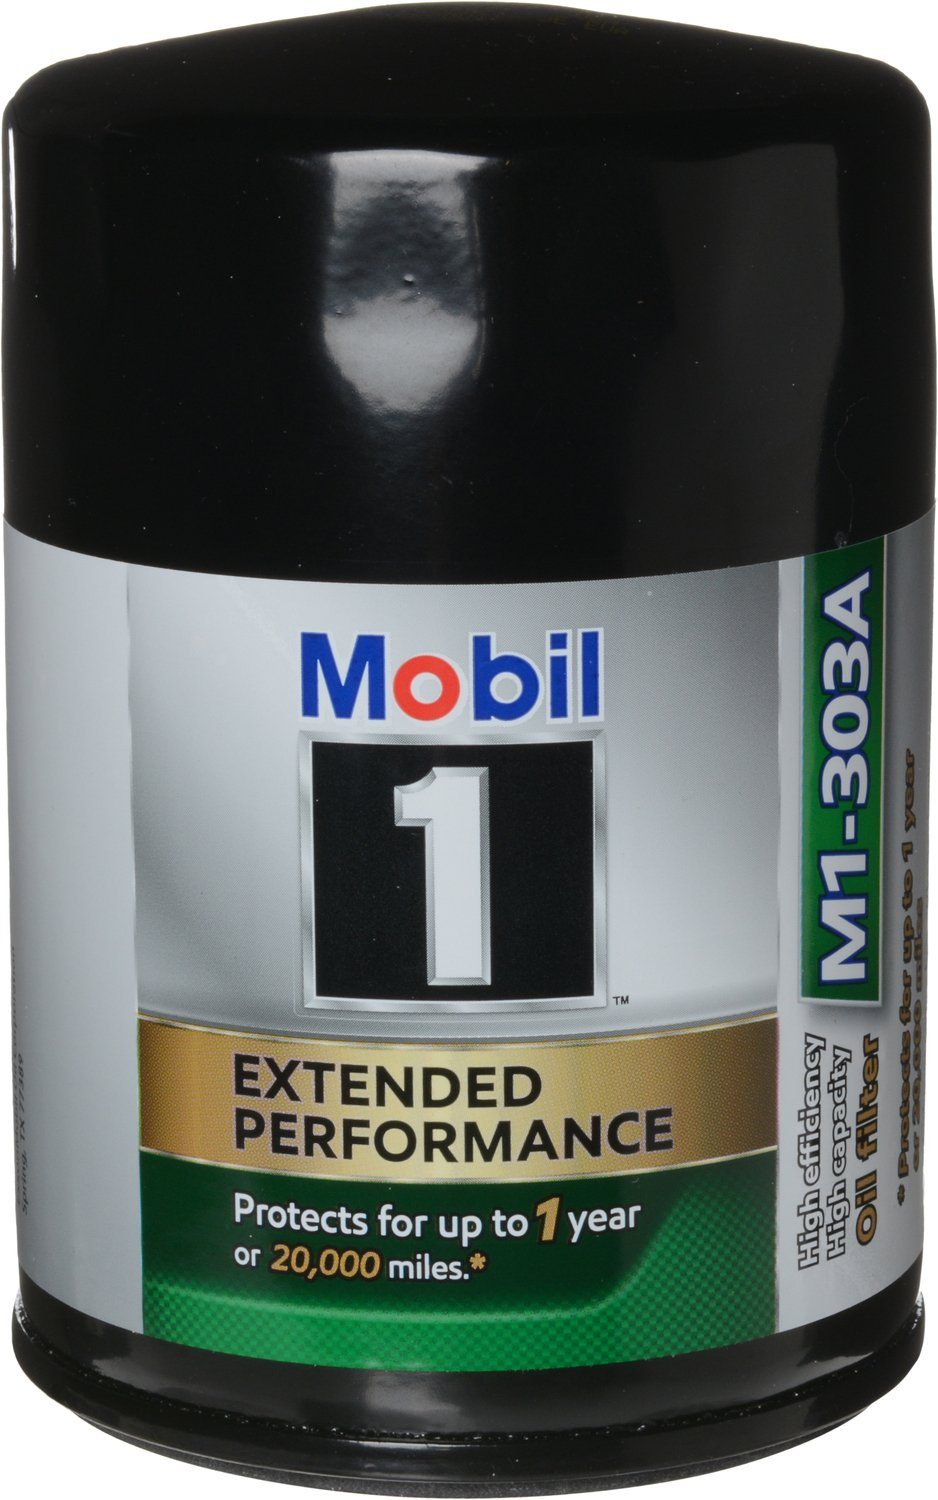 Mobil 1 M1-303A Extended Performance Oil Filter by Mobil 1